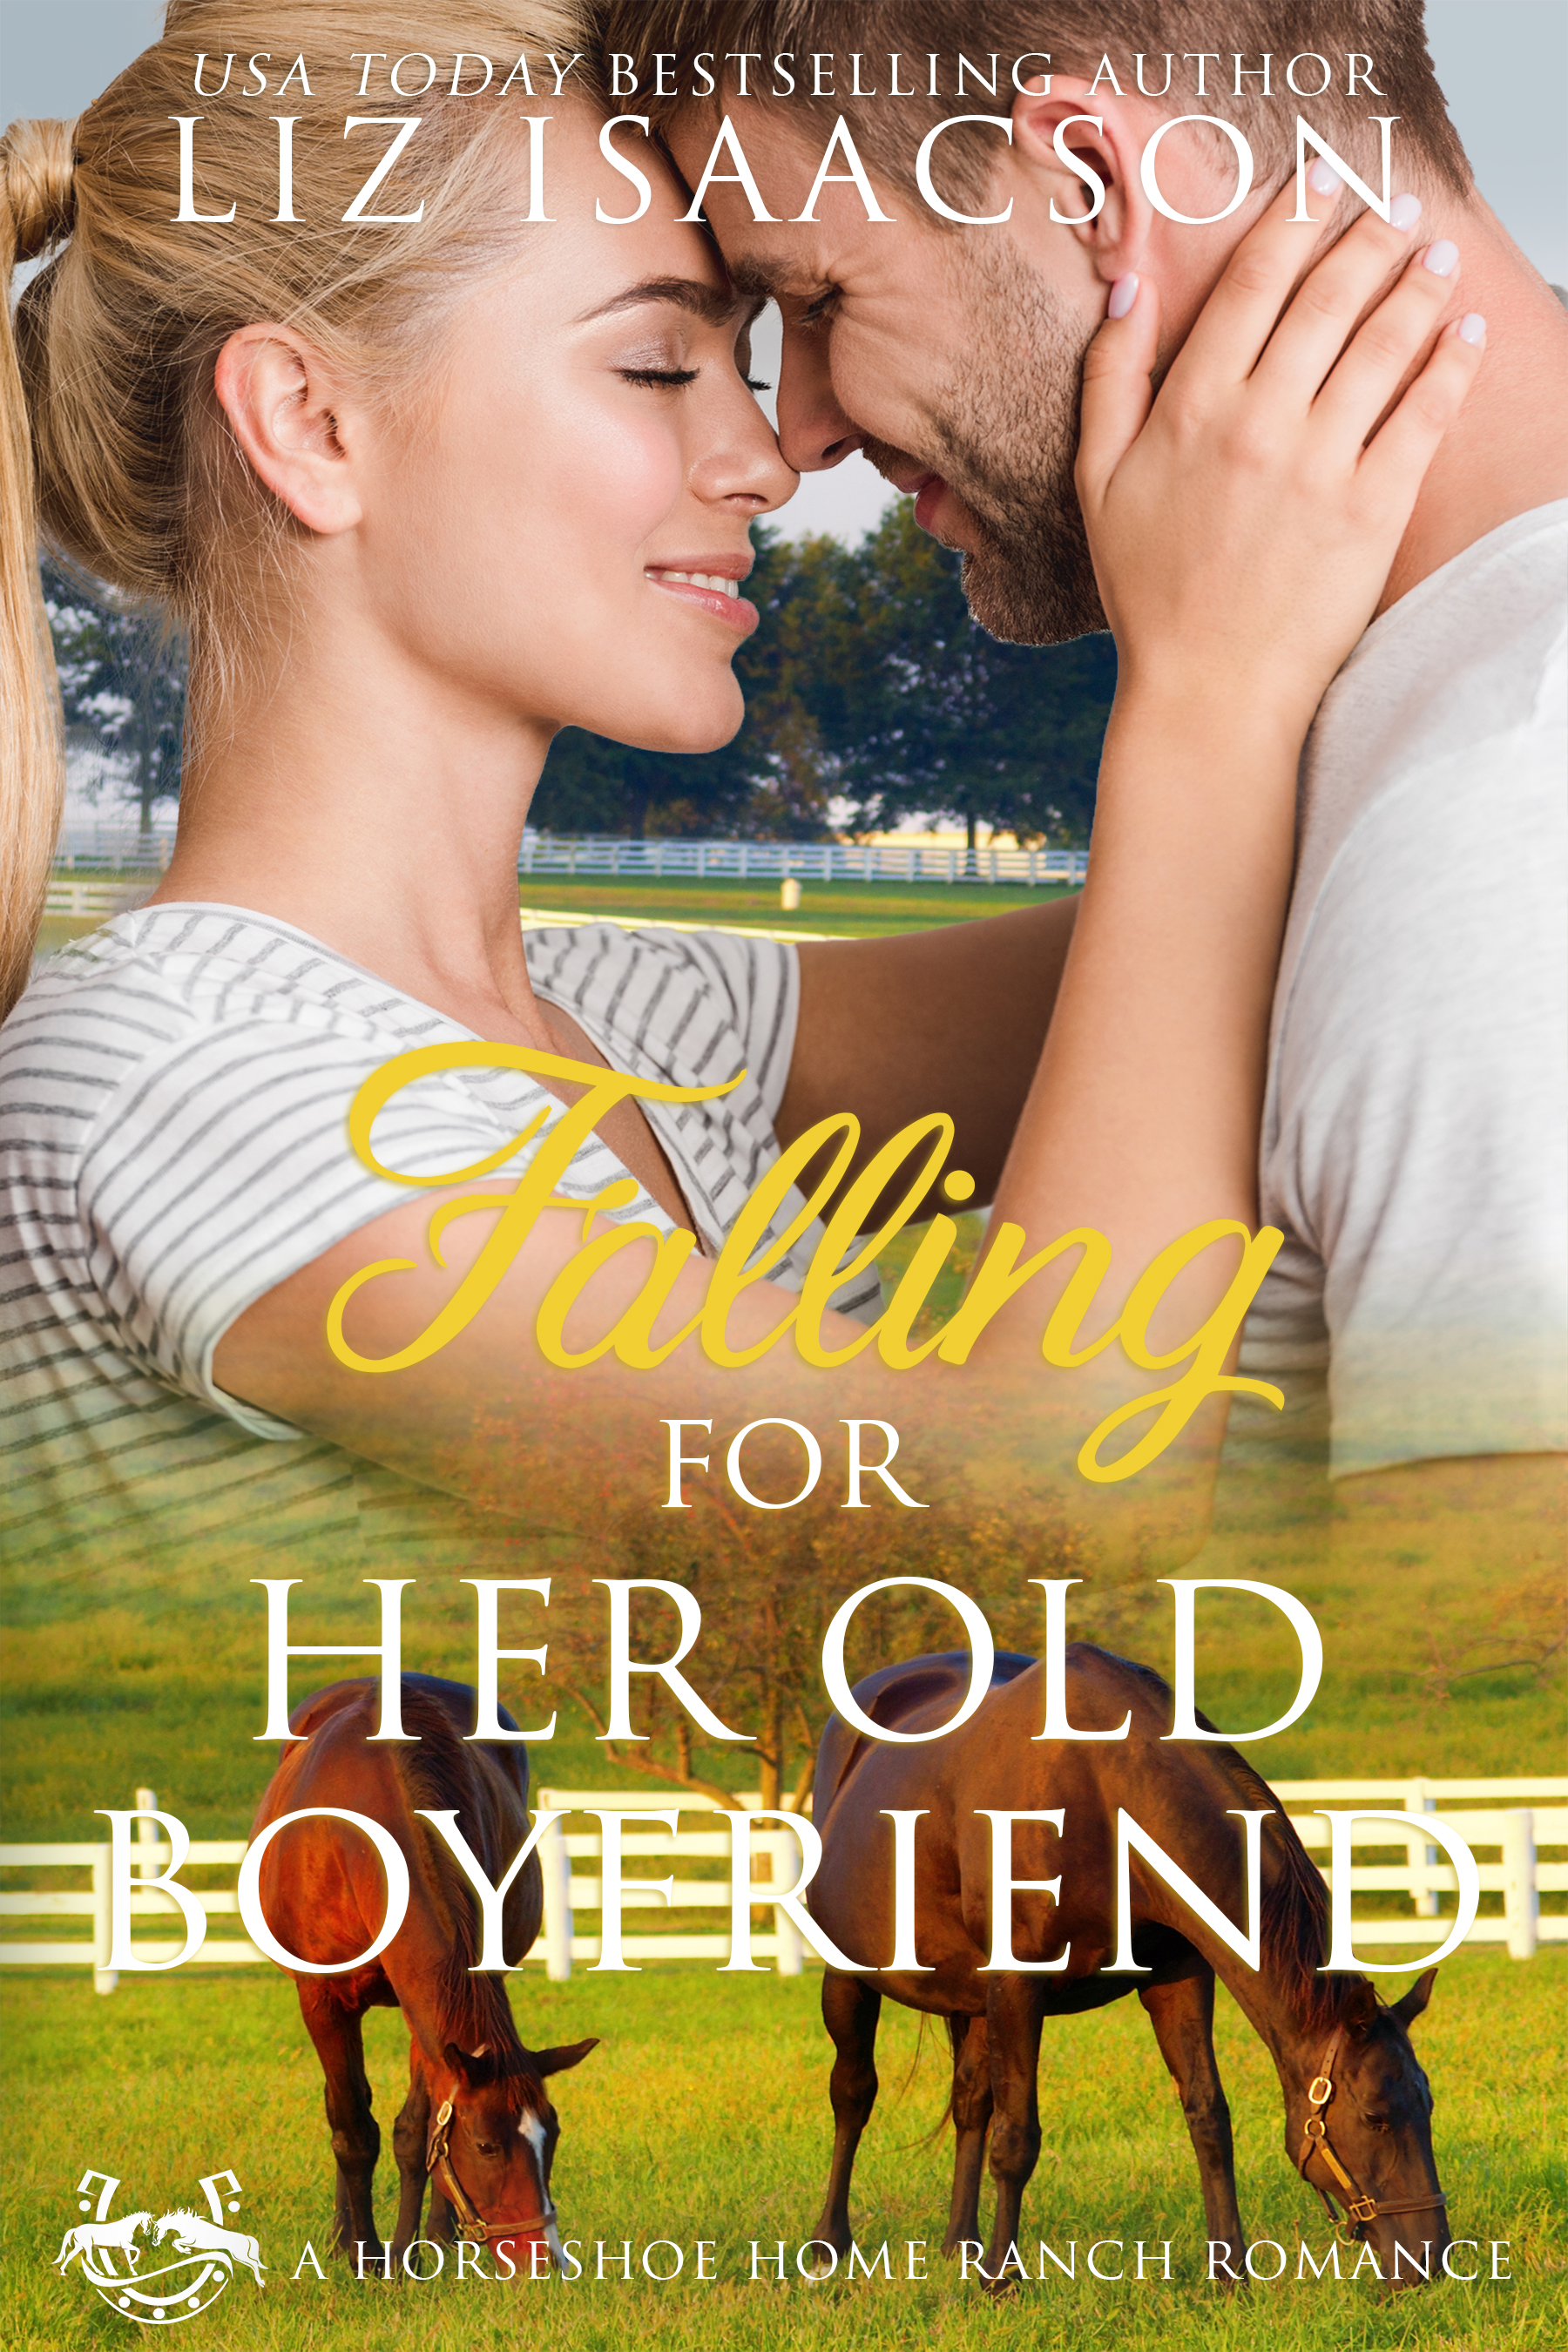 Falling for her old bpyfriend ebook